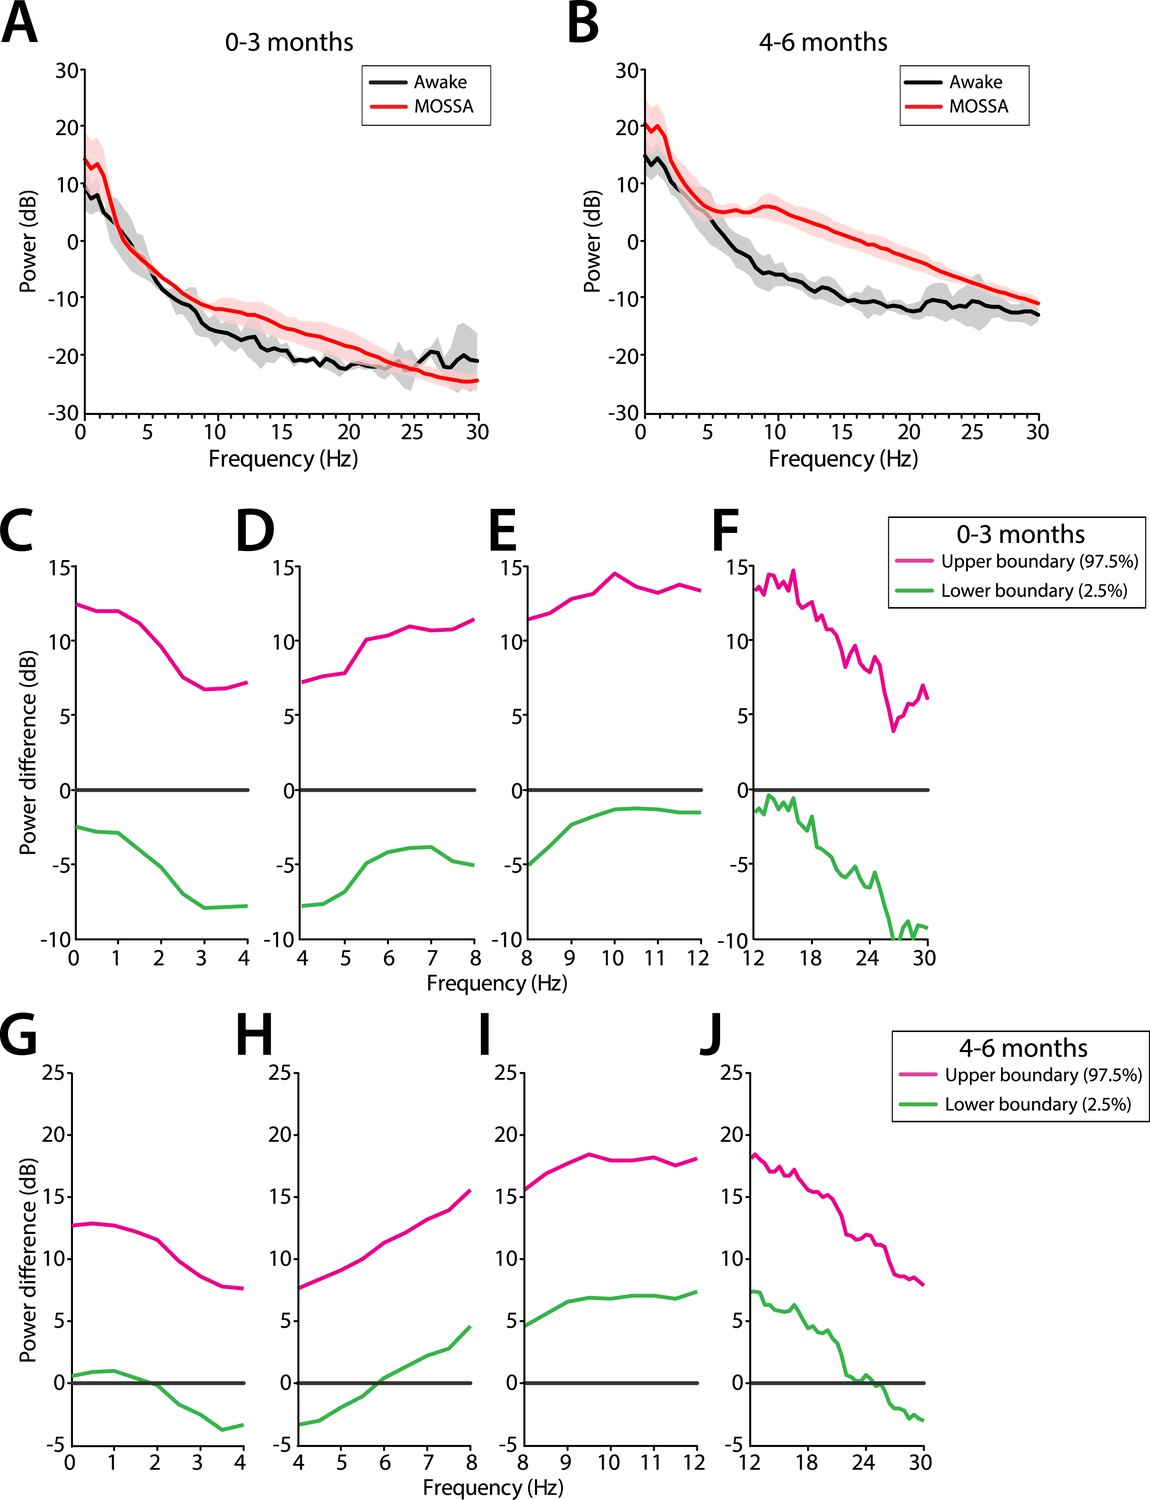 Age Dependent Electroencephalogram Eeg Patterns During Sevoflurane Schematic Frontal Power Changes Between The Awake State And Mossa